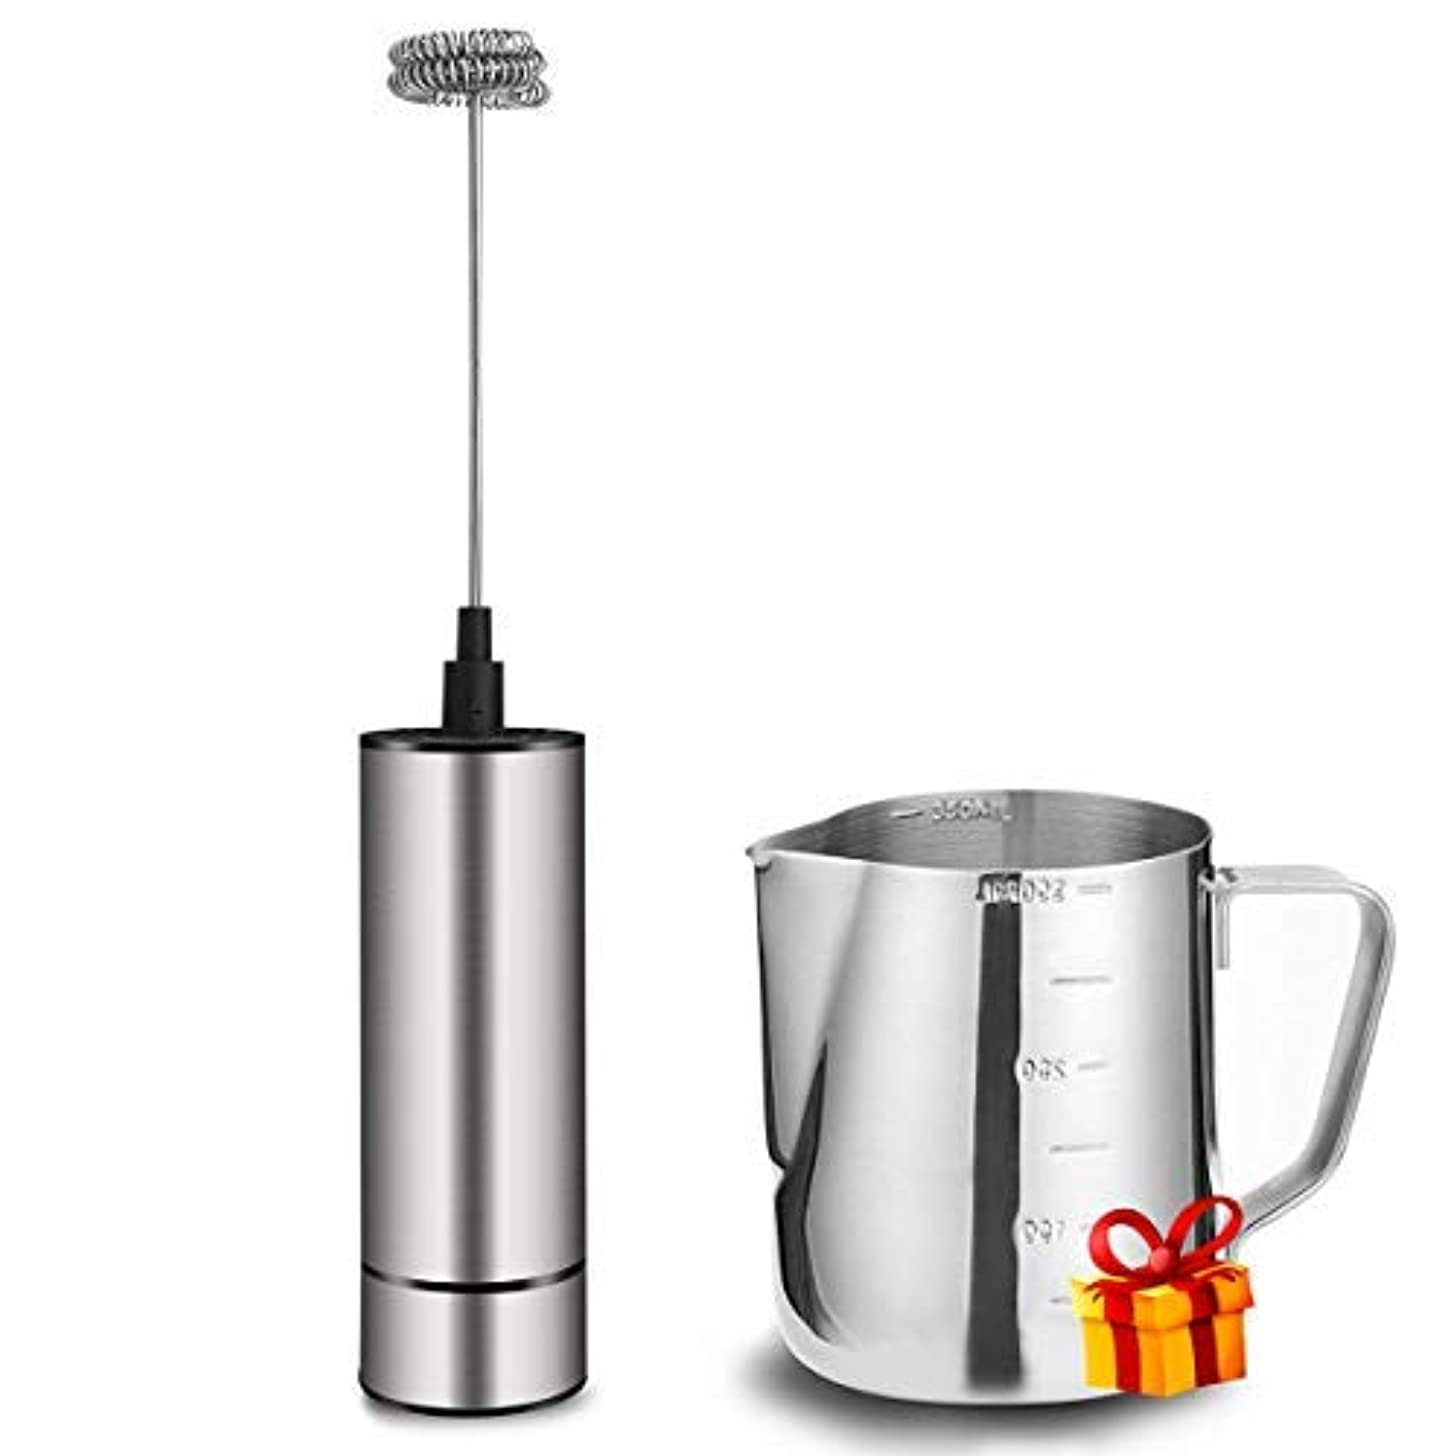 Milk Frother Handheld Electric, Coffee Frother for Milk Foaming, Latte/Cappuccino Frother Mini Frappe Mixer for Drink, Hot Chocolate, Stainless Steel Silver